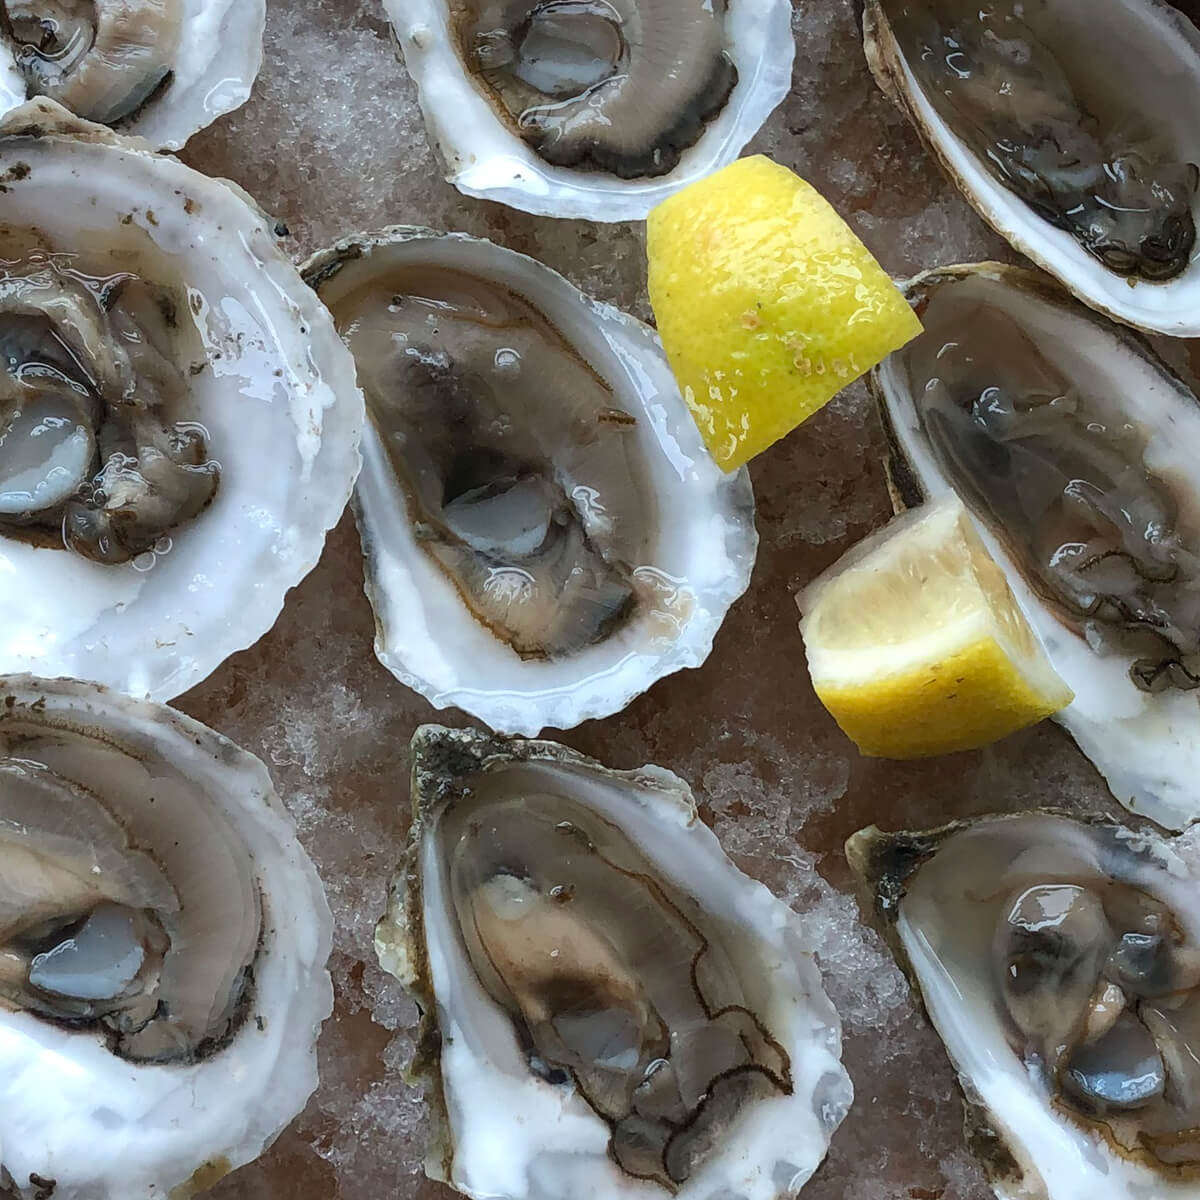 What My Trip to Maine Taught Me About Oysters and Sustainability